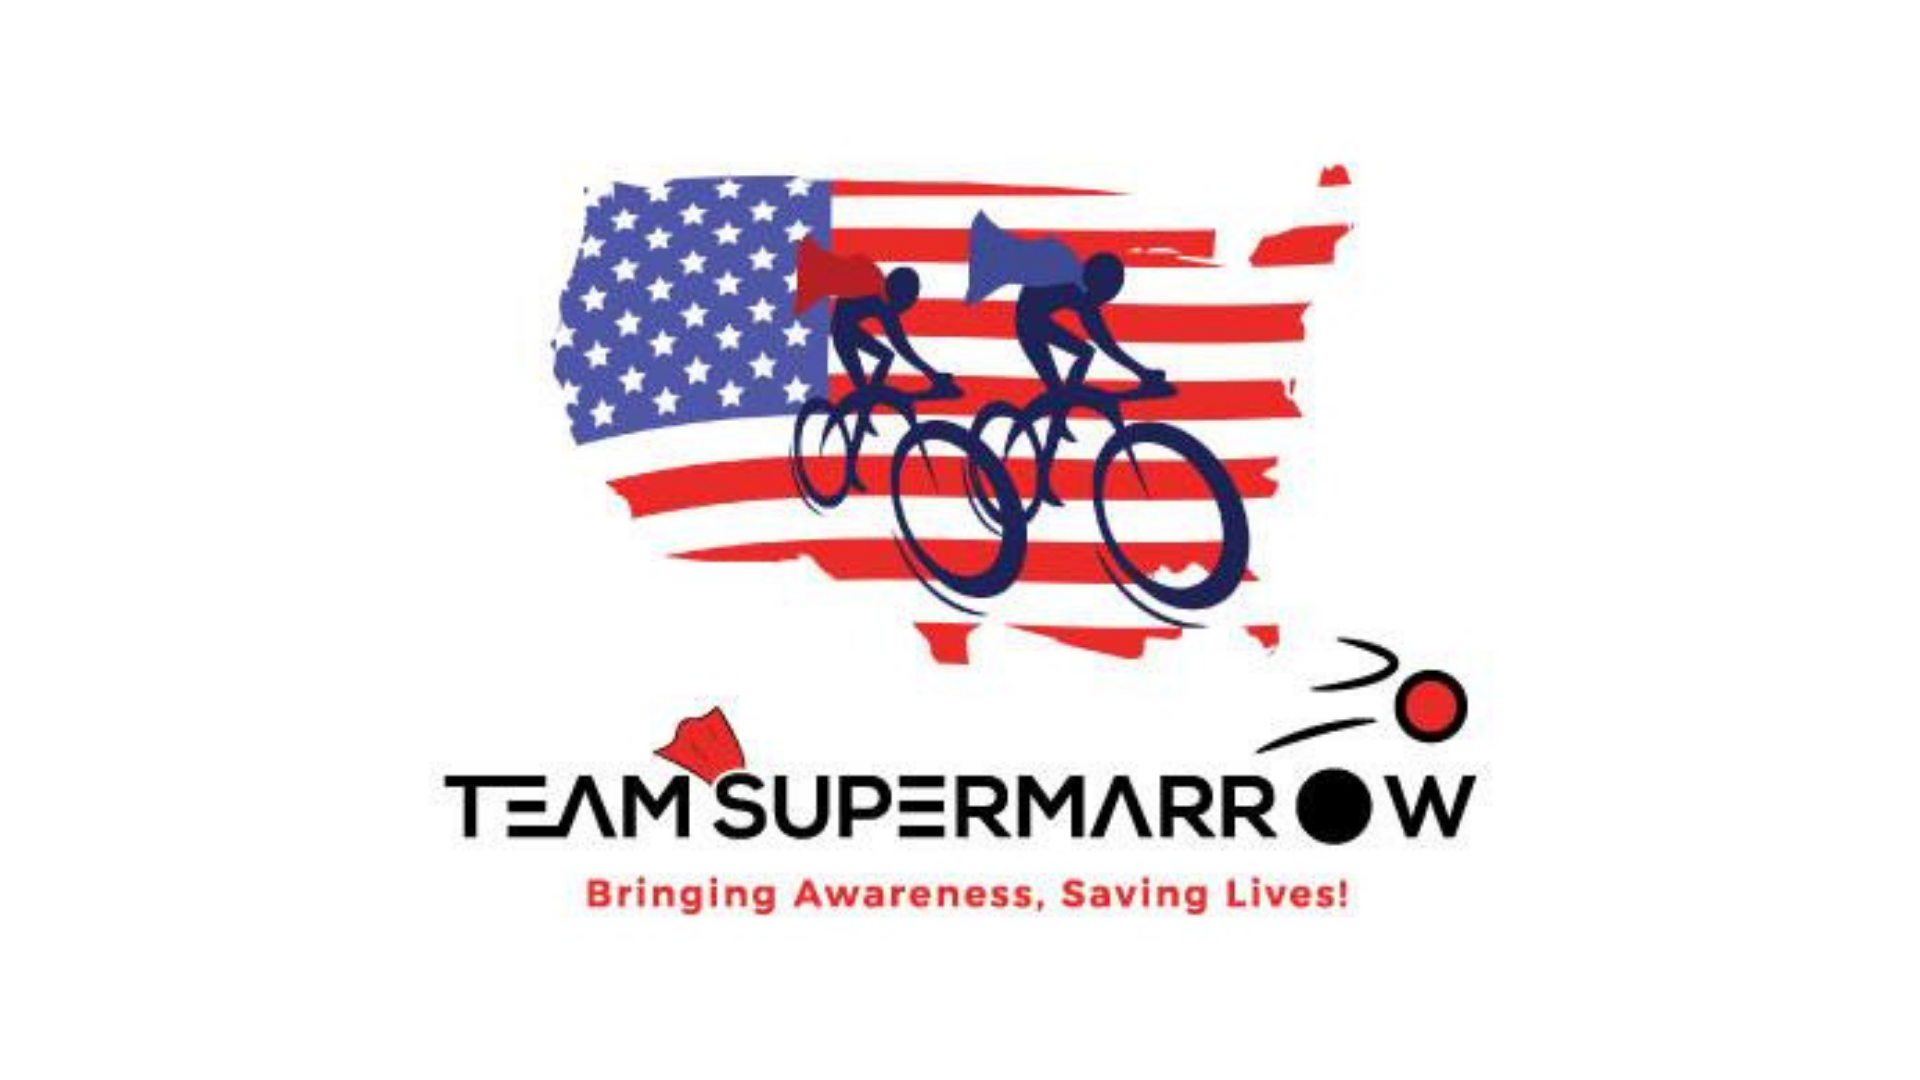 Team SuperMarrow's Race Across America Cheerleaders at the Finish Line of The World's Toughest Bicycle Race